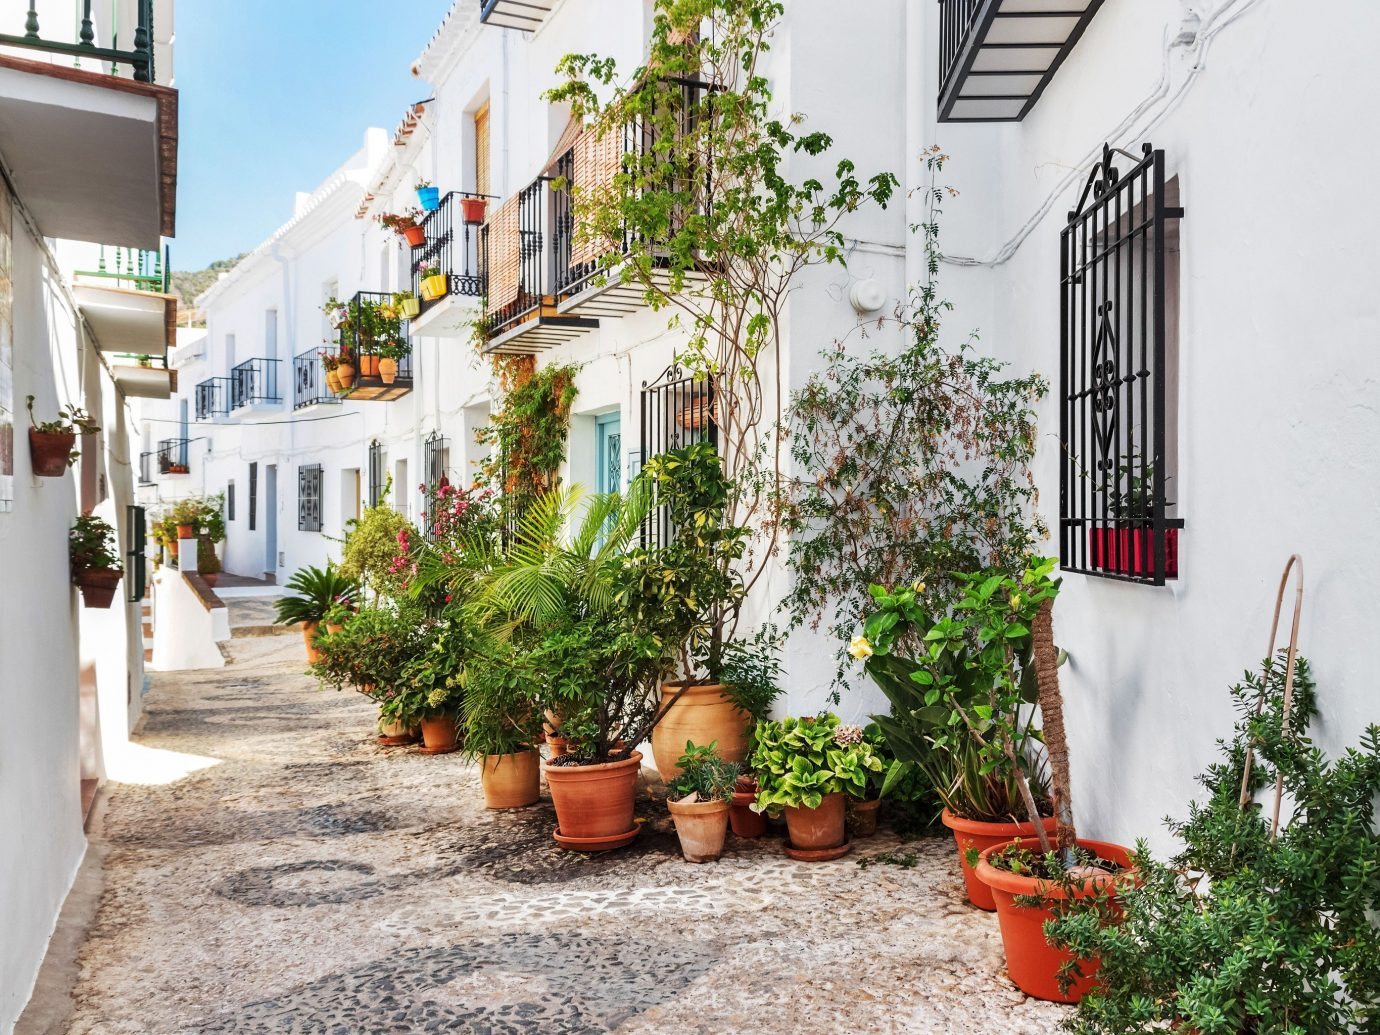 Trip Ideas outdoor house property way neighbourhood Town home Courtyard residential area street plant estate flower Balcony facade cottage alley sidewalk Garden yard Village apartment stone